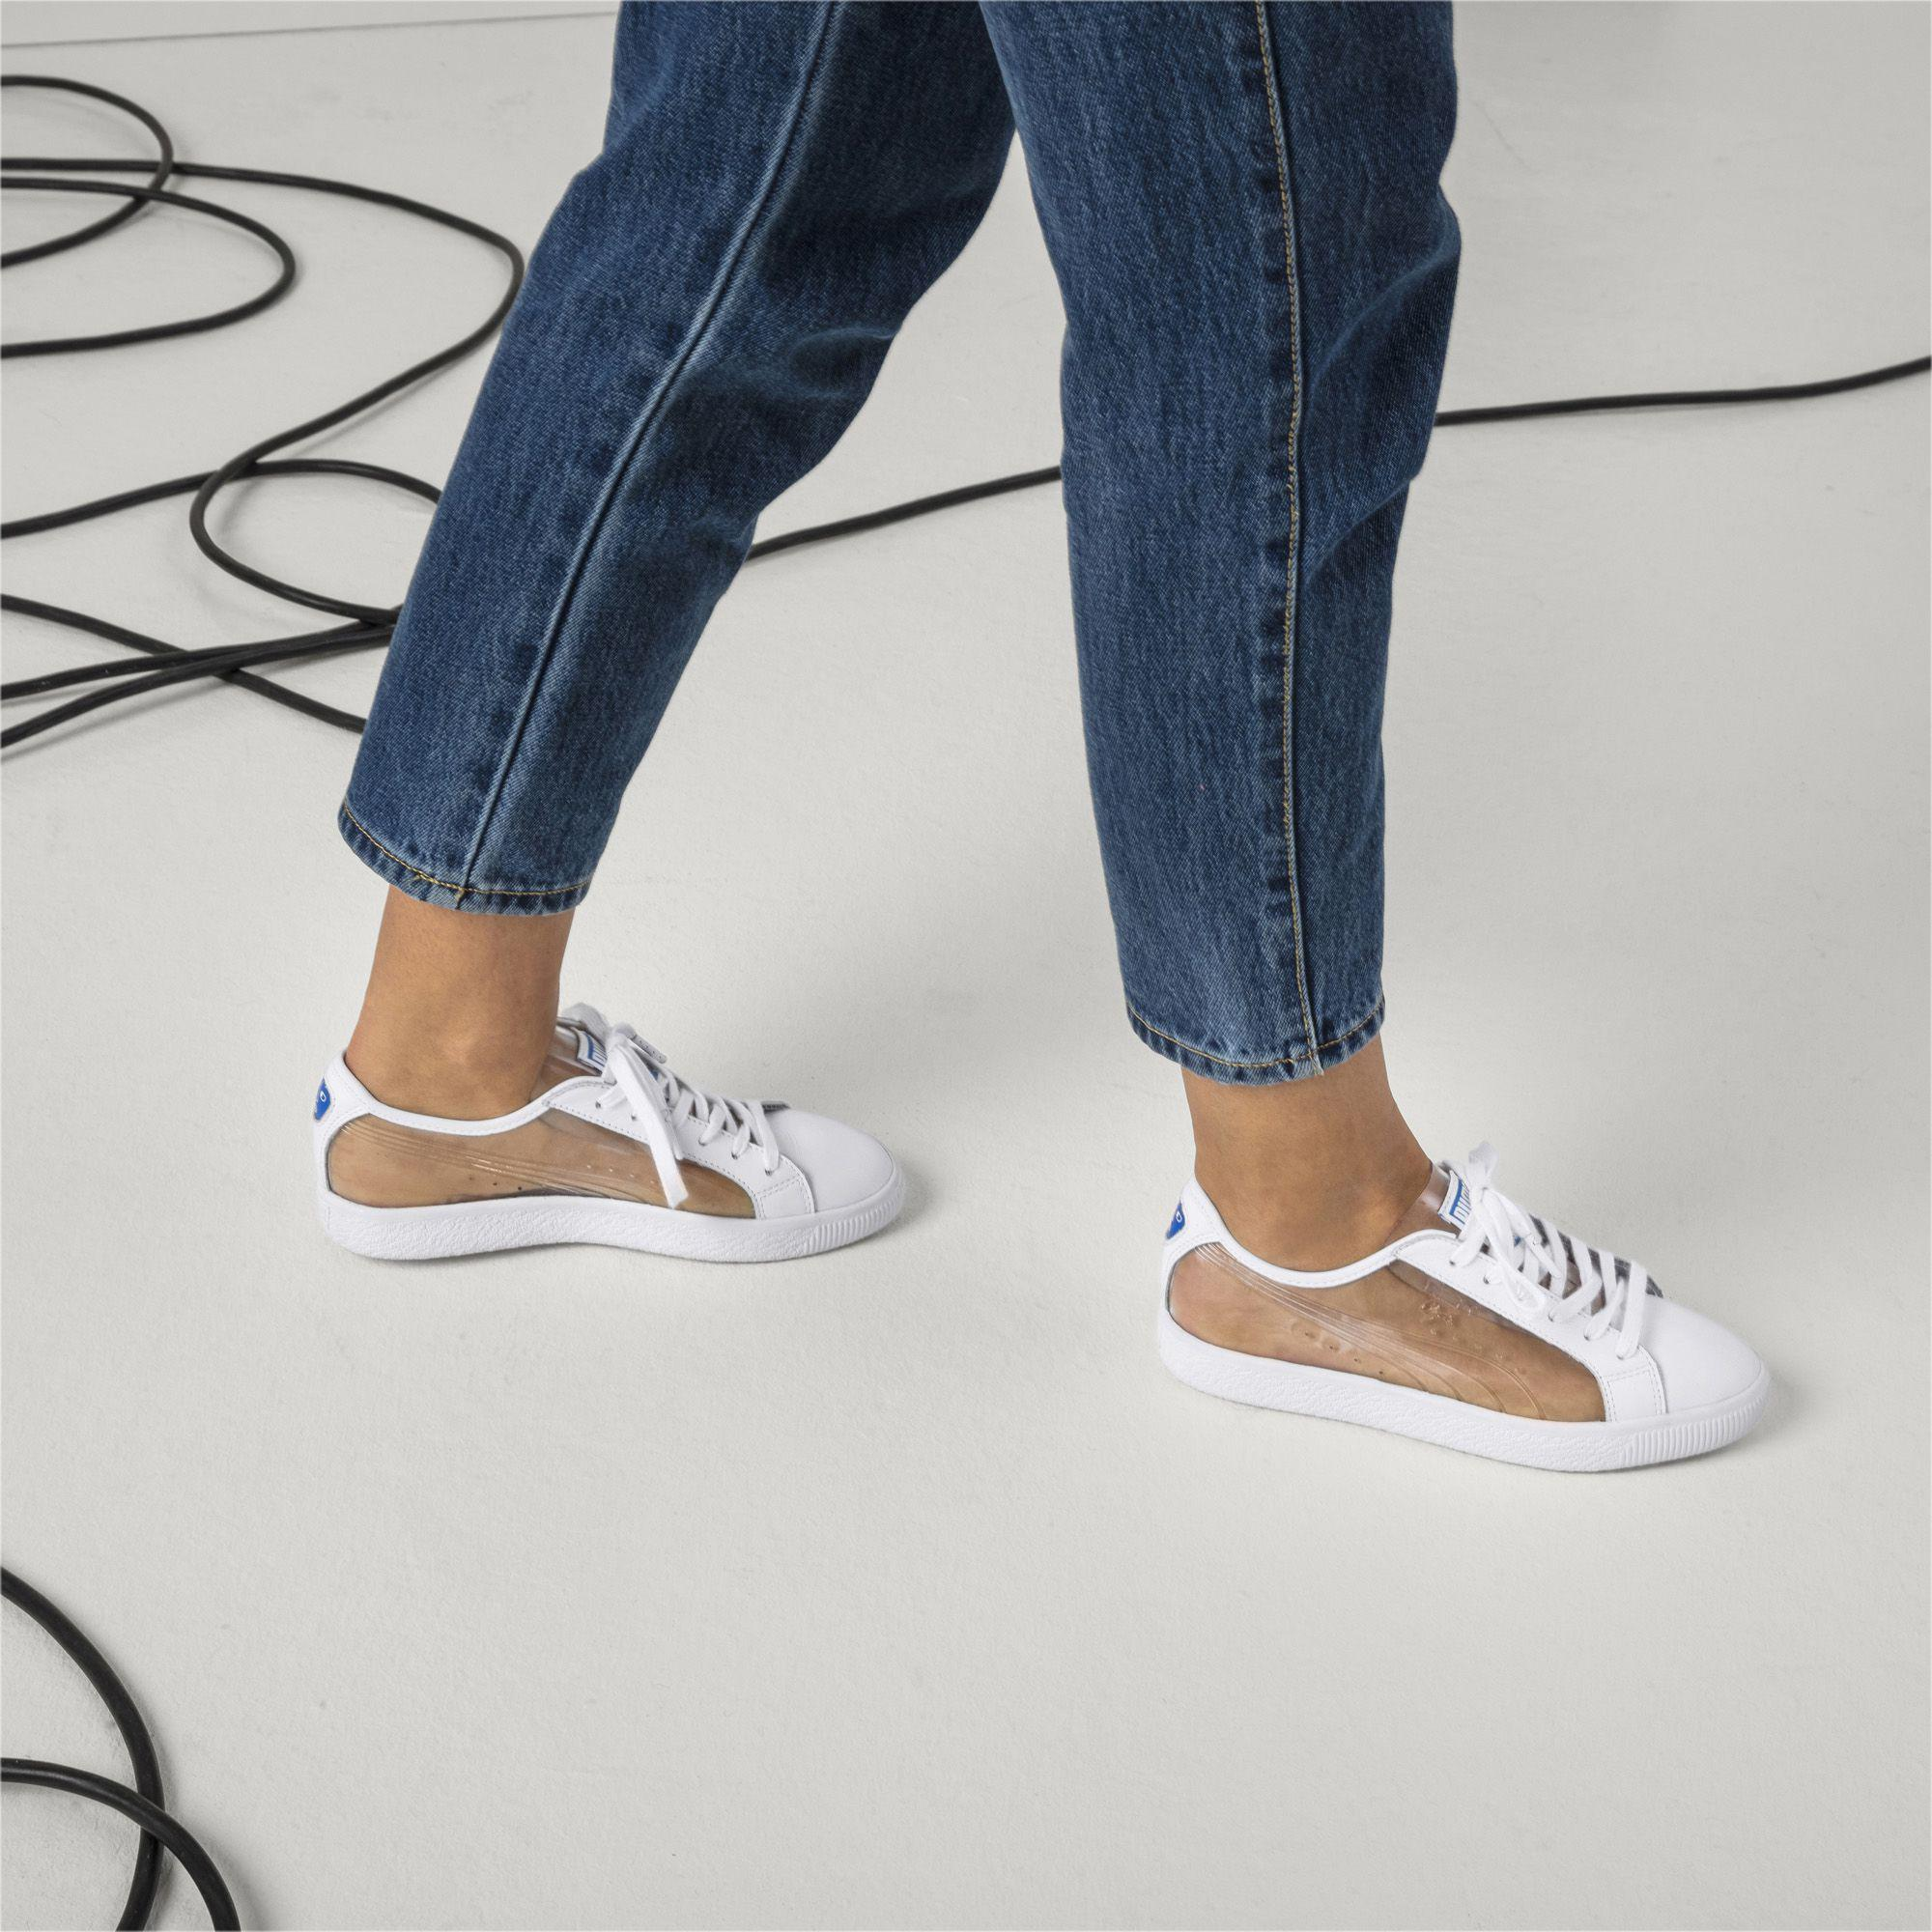 X Shantell Martin Clyde Clear Sneakers